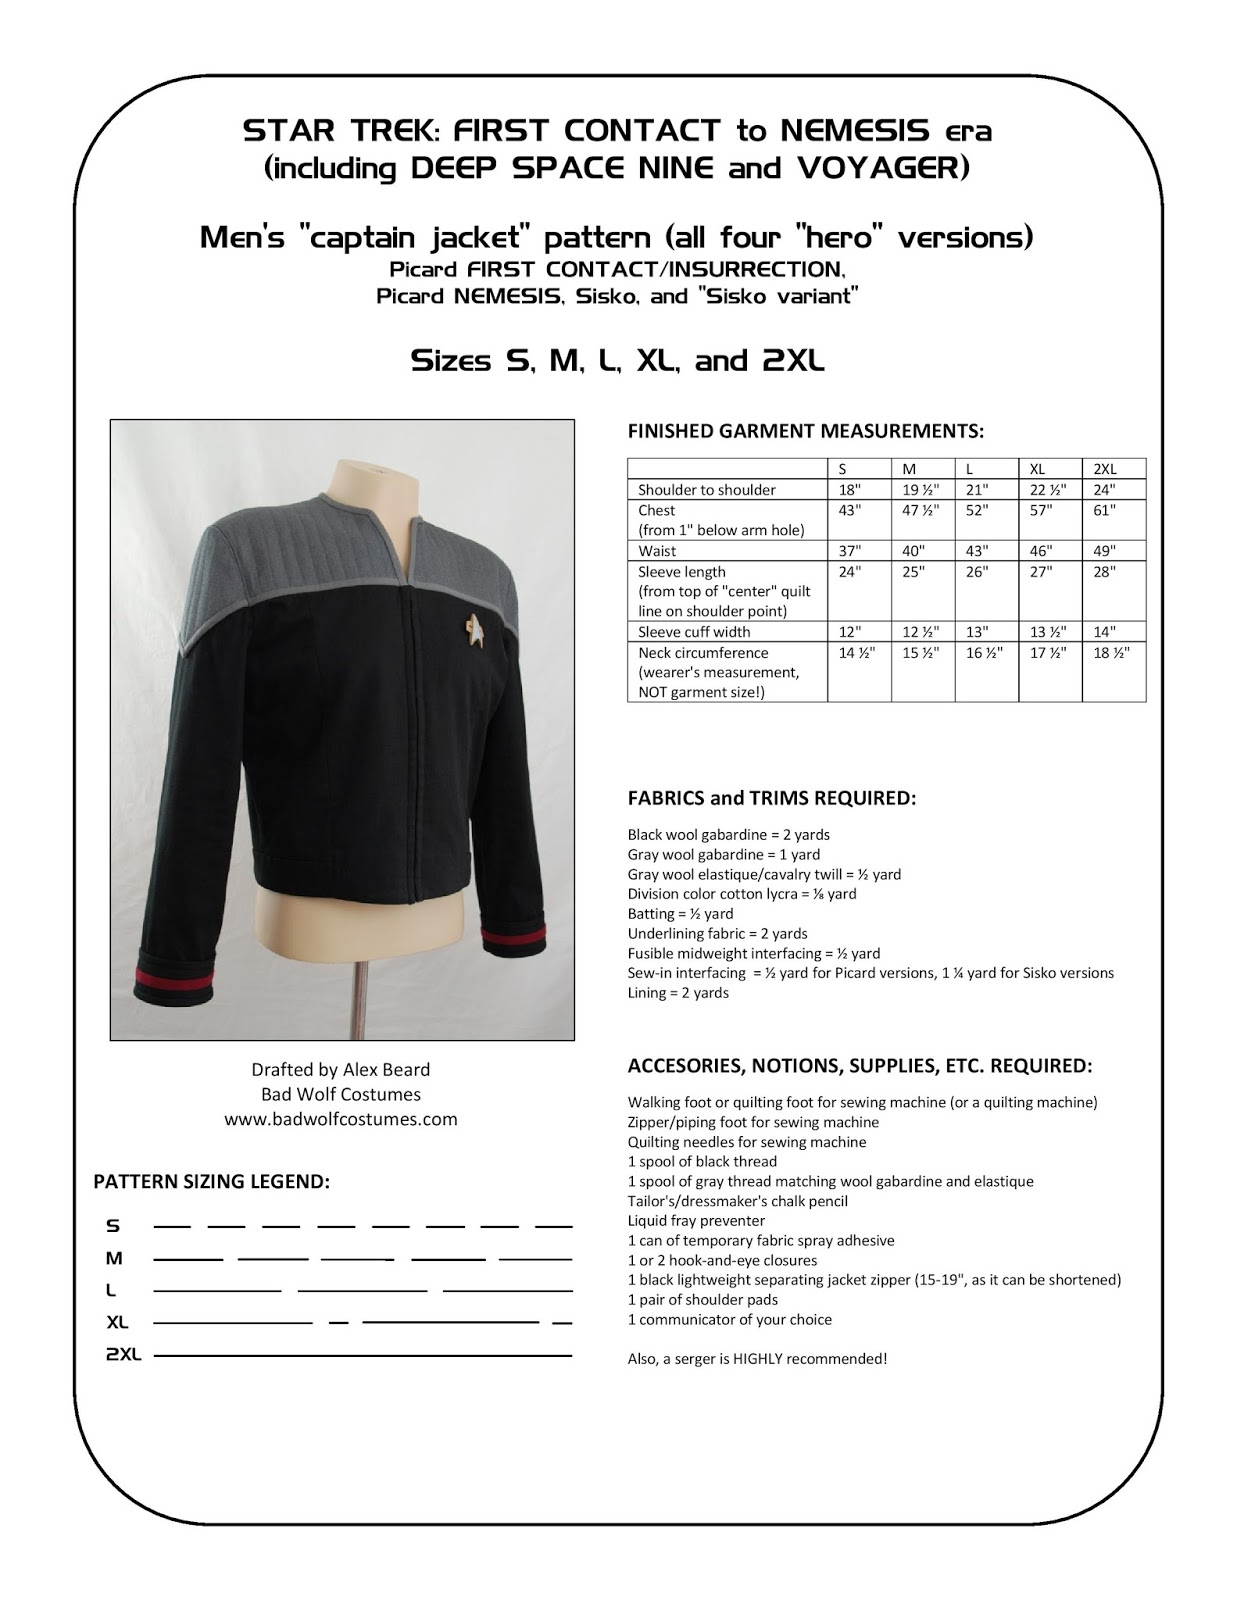 This is a sewing pattern for the menu0027s  captain jacket  which was first introduced in Star Trek First Contact seen in several variations throughout the ...  sc 1 st  Bad Wolf Costumes & Bad Wolf Costumes: Star Trek: DS9/NEM Captain Jacket Sewing Pattern